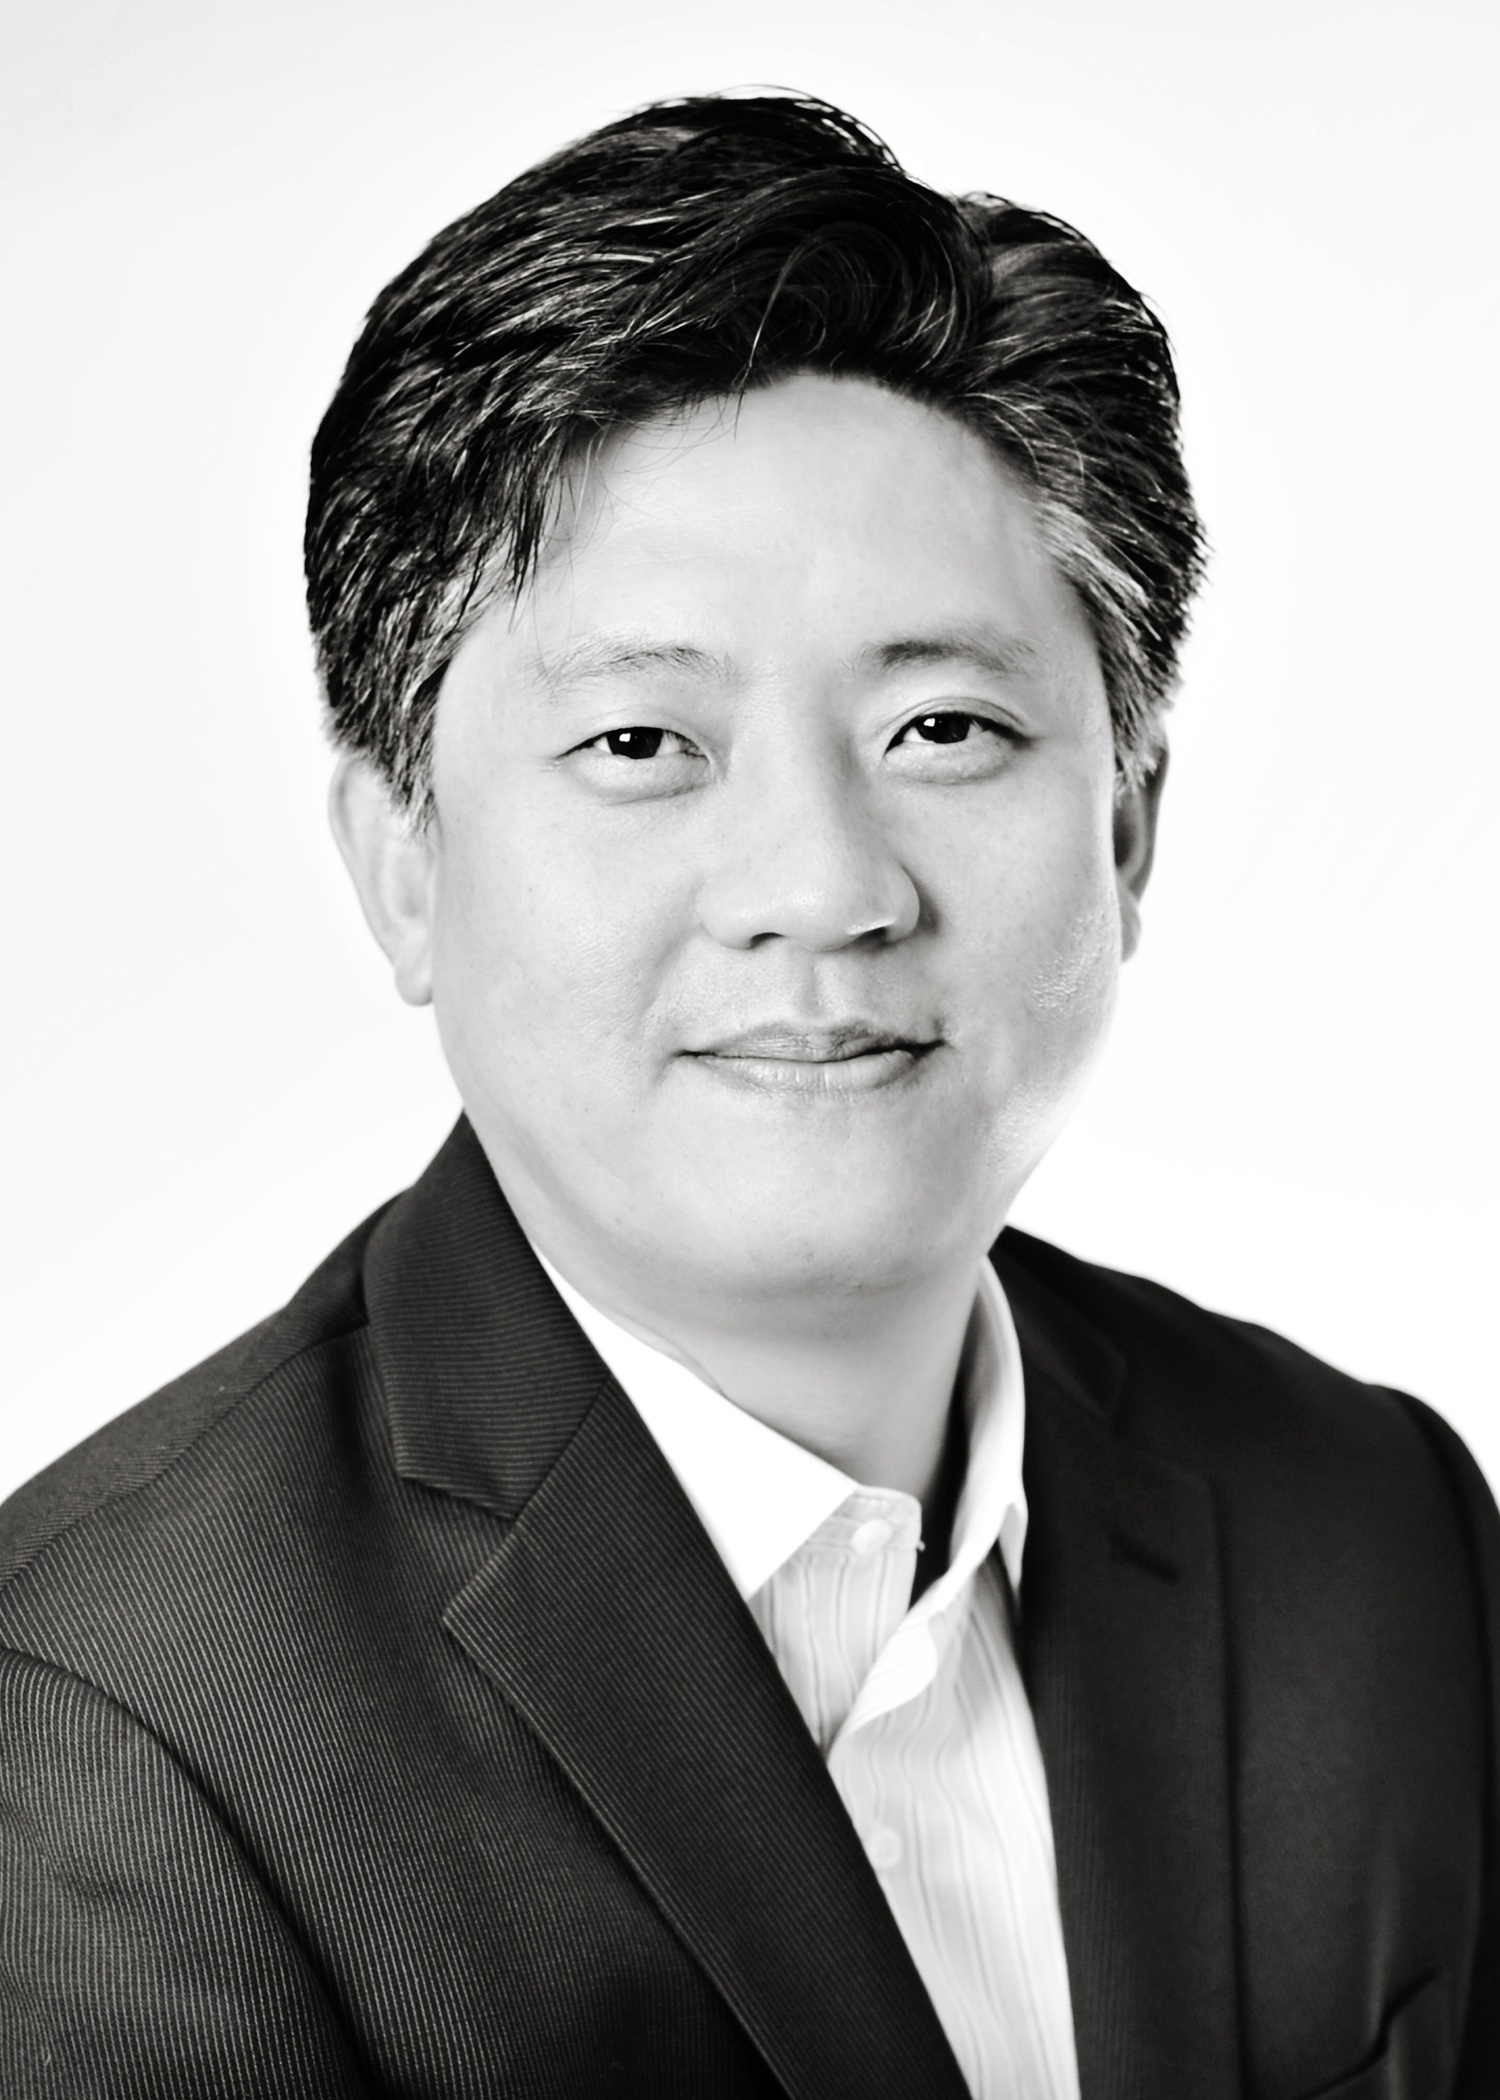 Dr. Jun Hong, CTO of CorFire